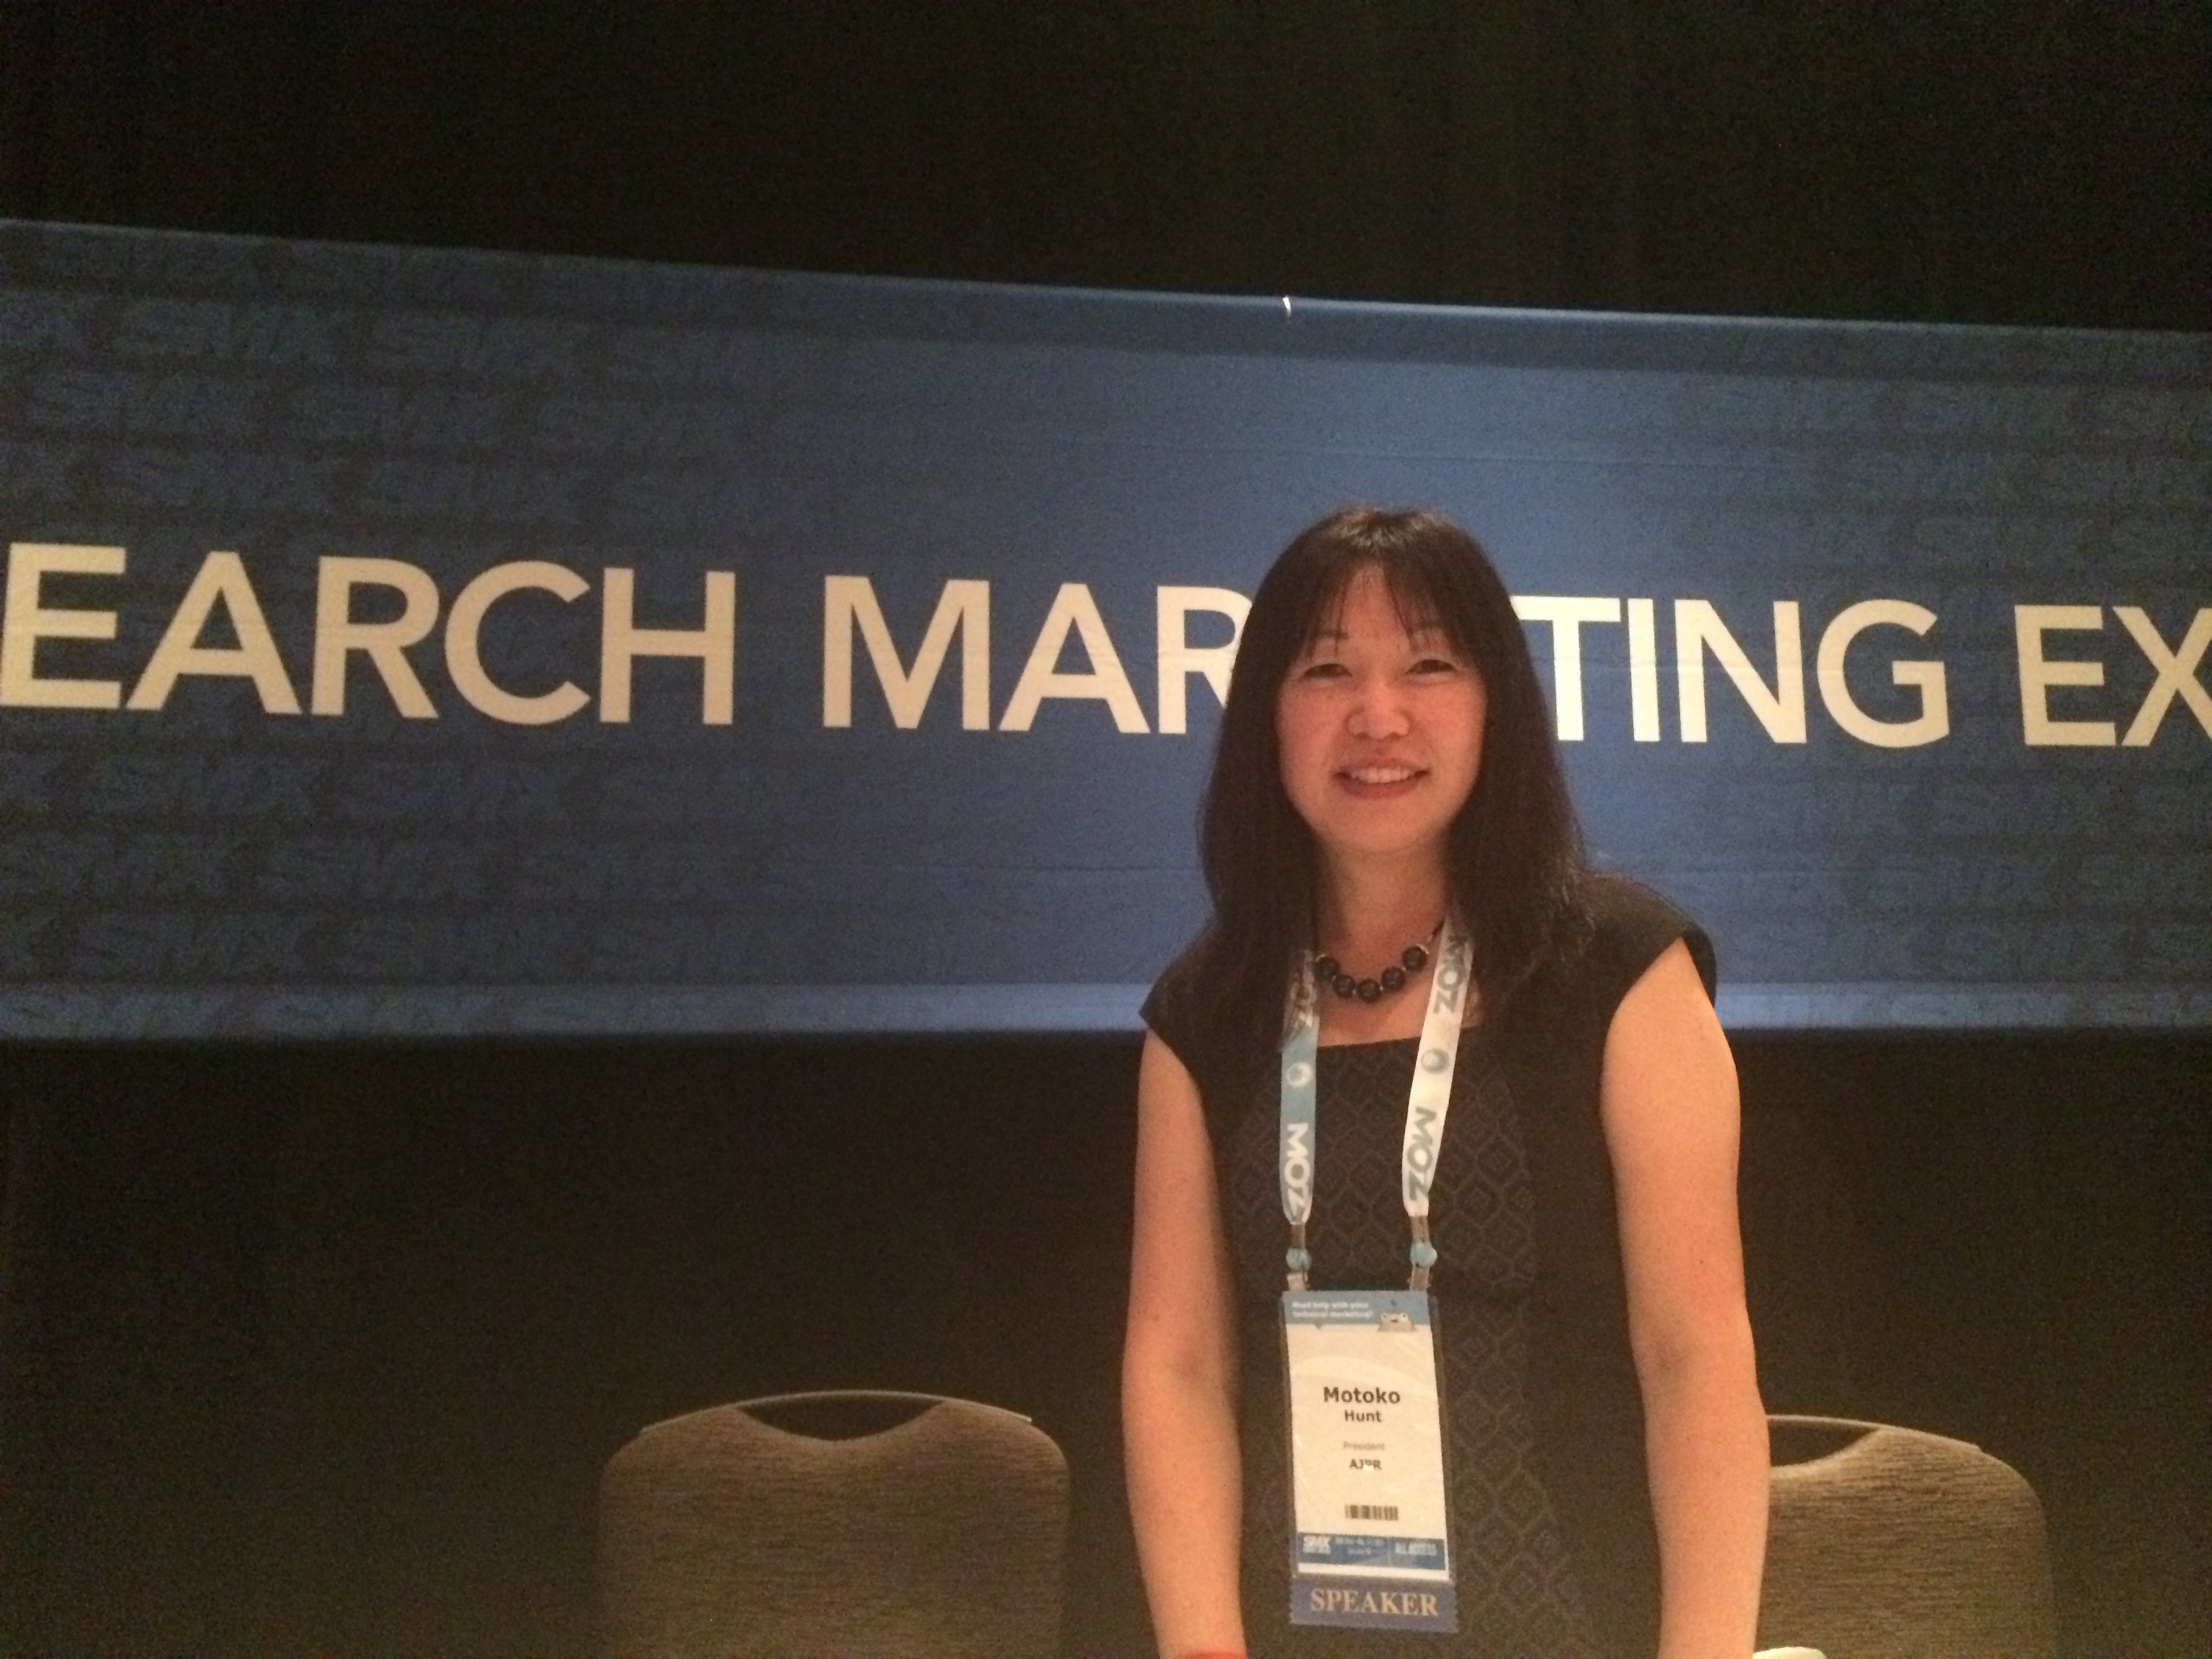 Motoko Hunt SMX West 2015